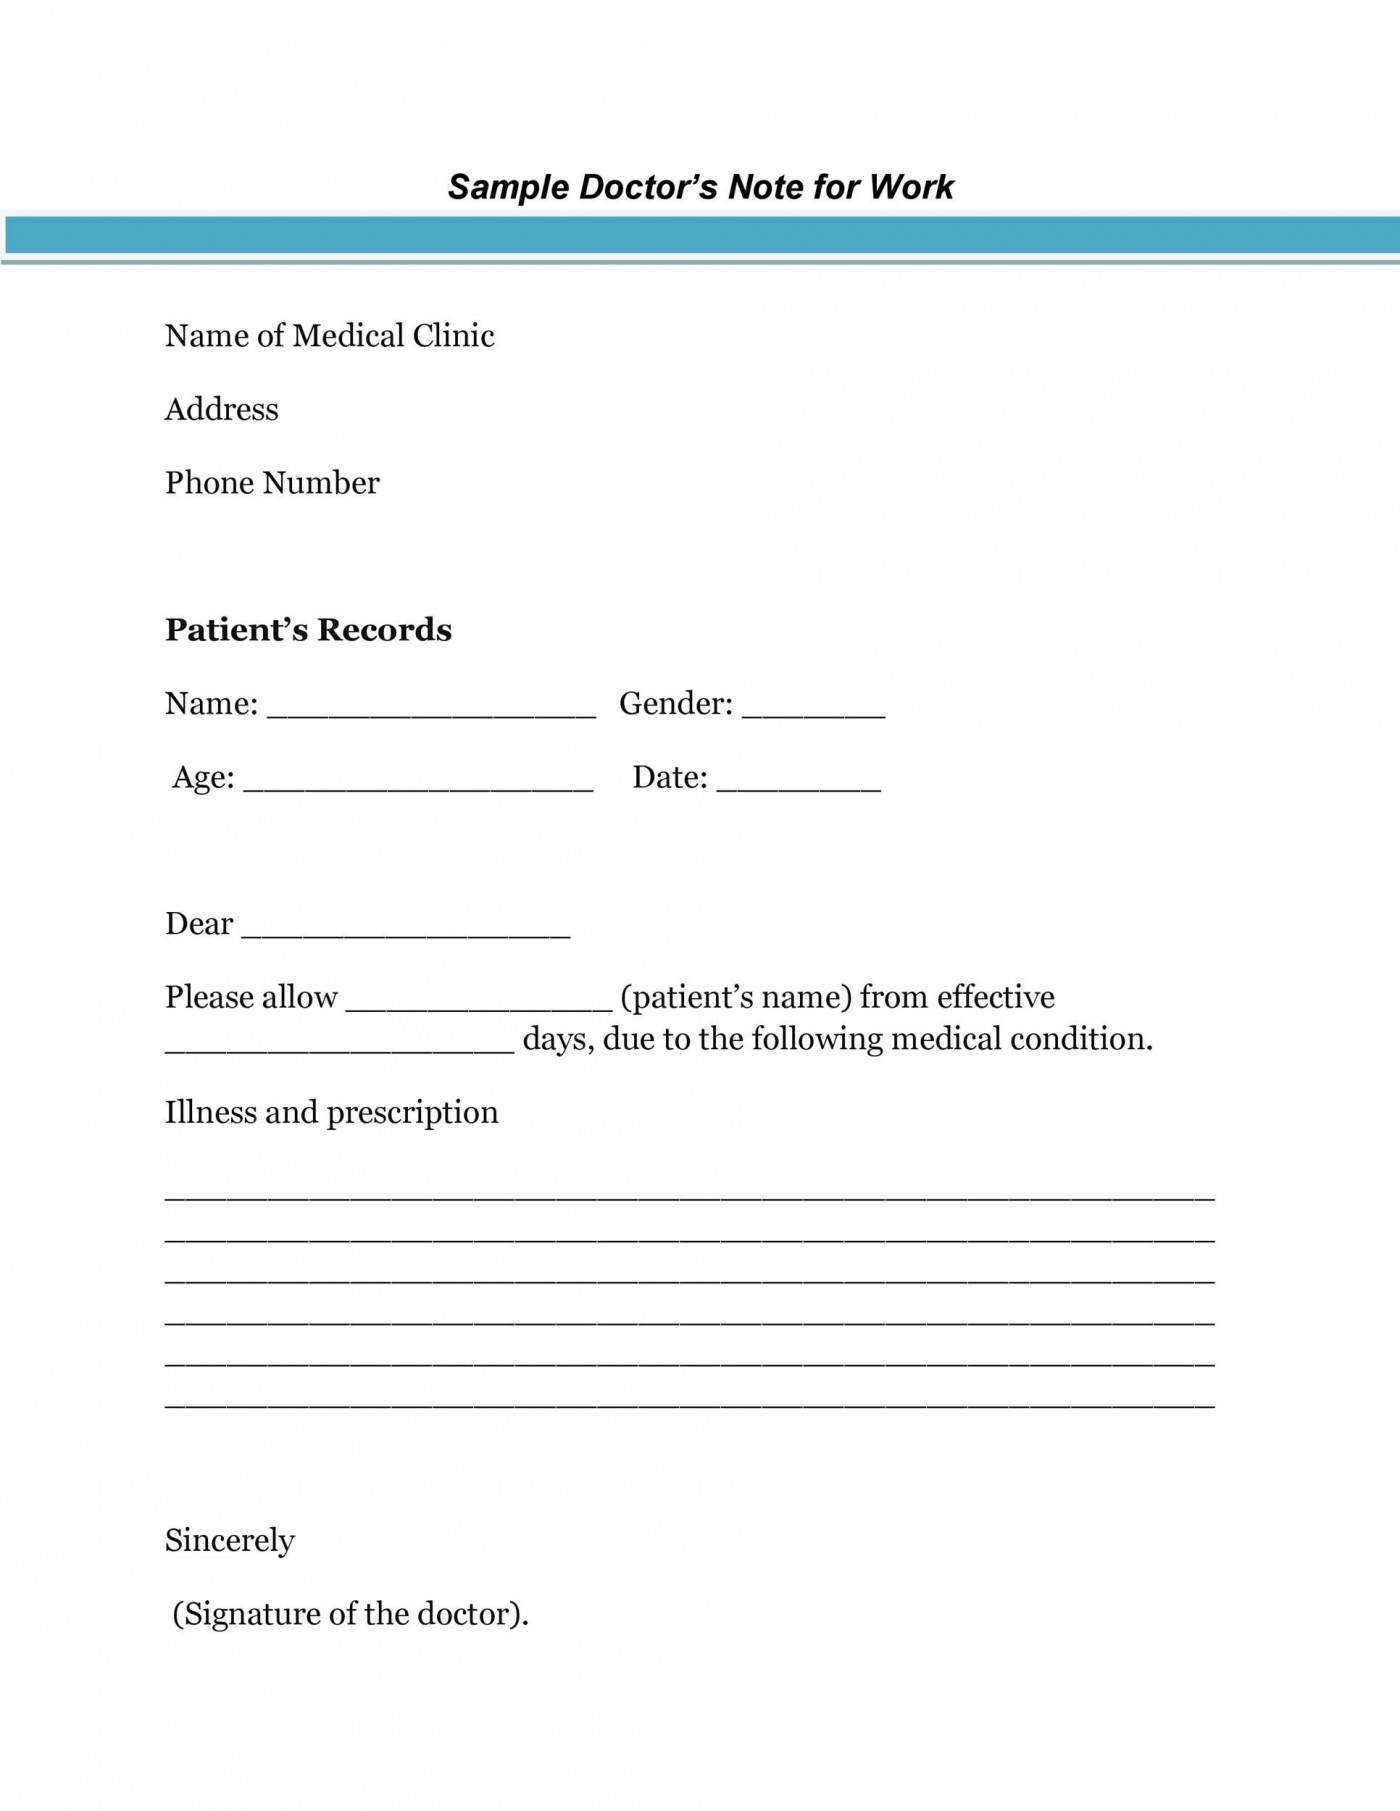 005 Wondrou Doctor Excuse Template For Work Highest Clarity  Note Missing1400